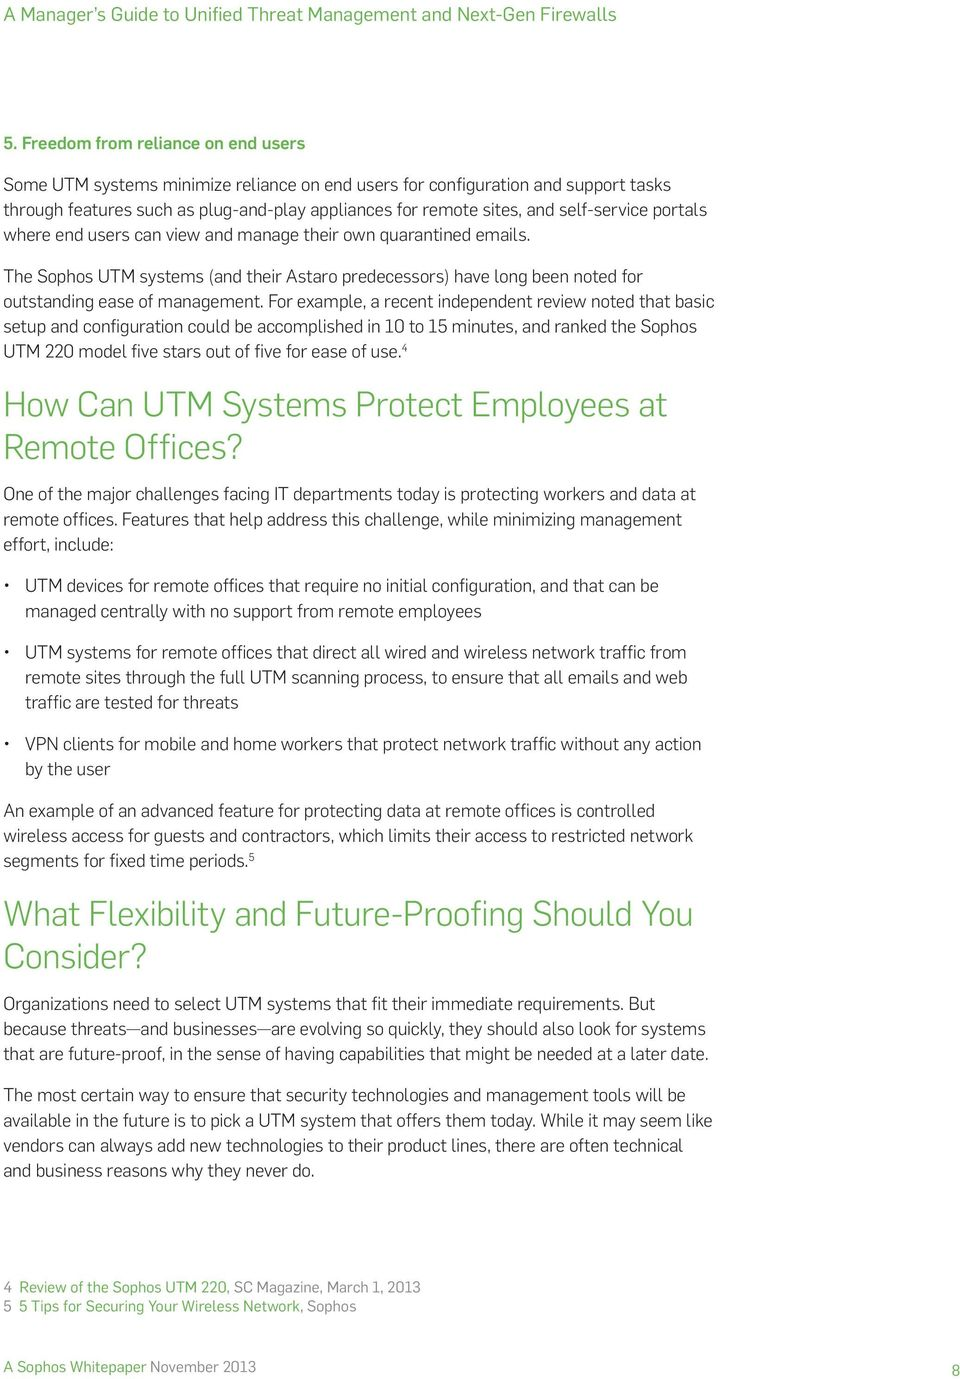 For example, a recent independent review noted that basic setup and configuration could be accomplished in 10 to 15 minutes, and ranked the Sophos UTM 220 model five stars out of five for ease of use.